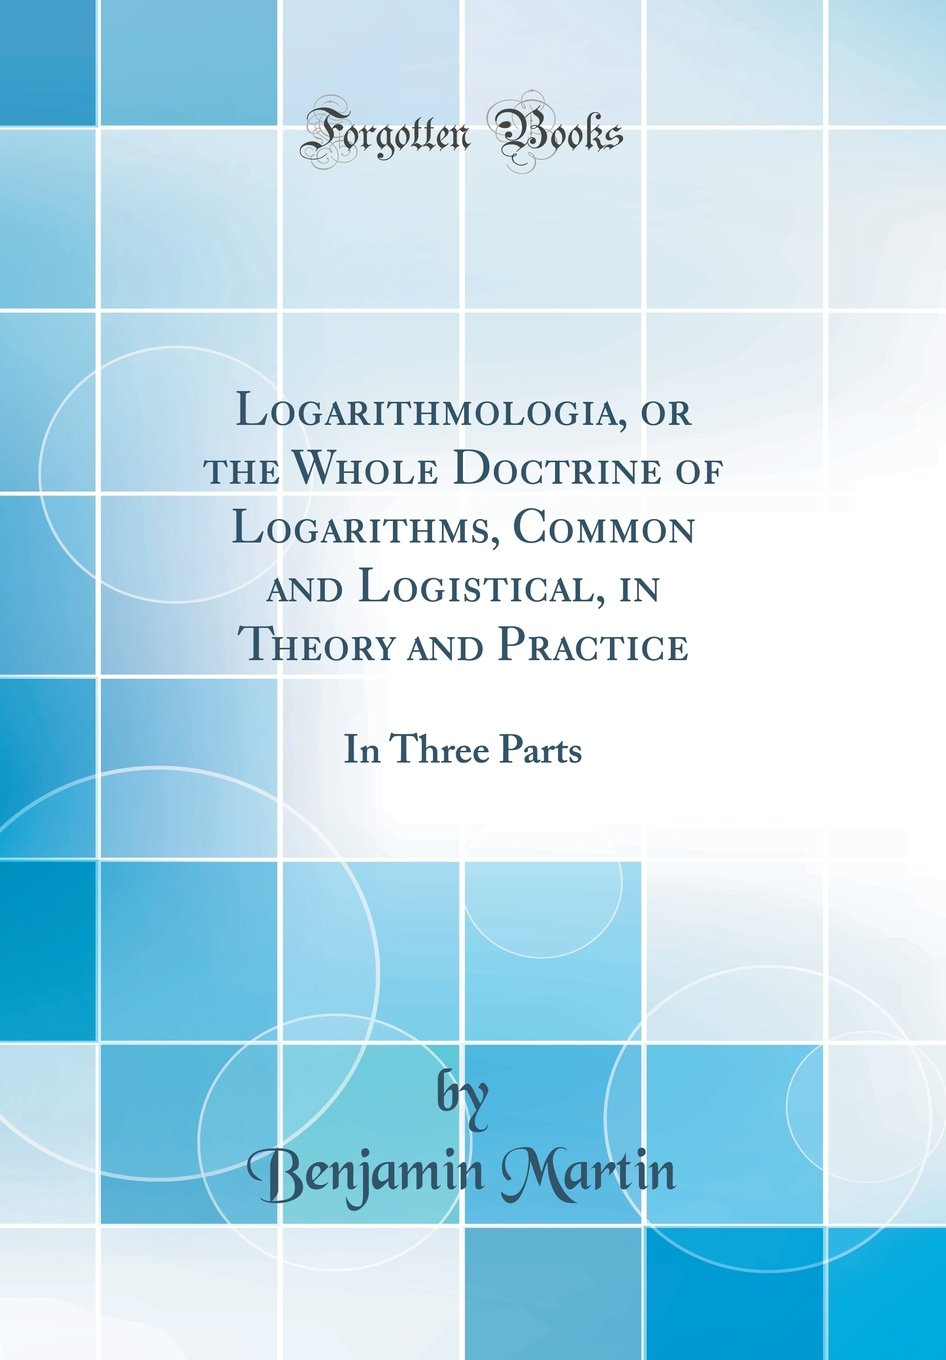 Download Logarithmologia, or the Whole Doctrine of Logarithms, Common and Logistical, in Theory and Practice: In Three Parts (Classic Reprint) PDF